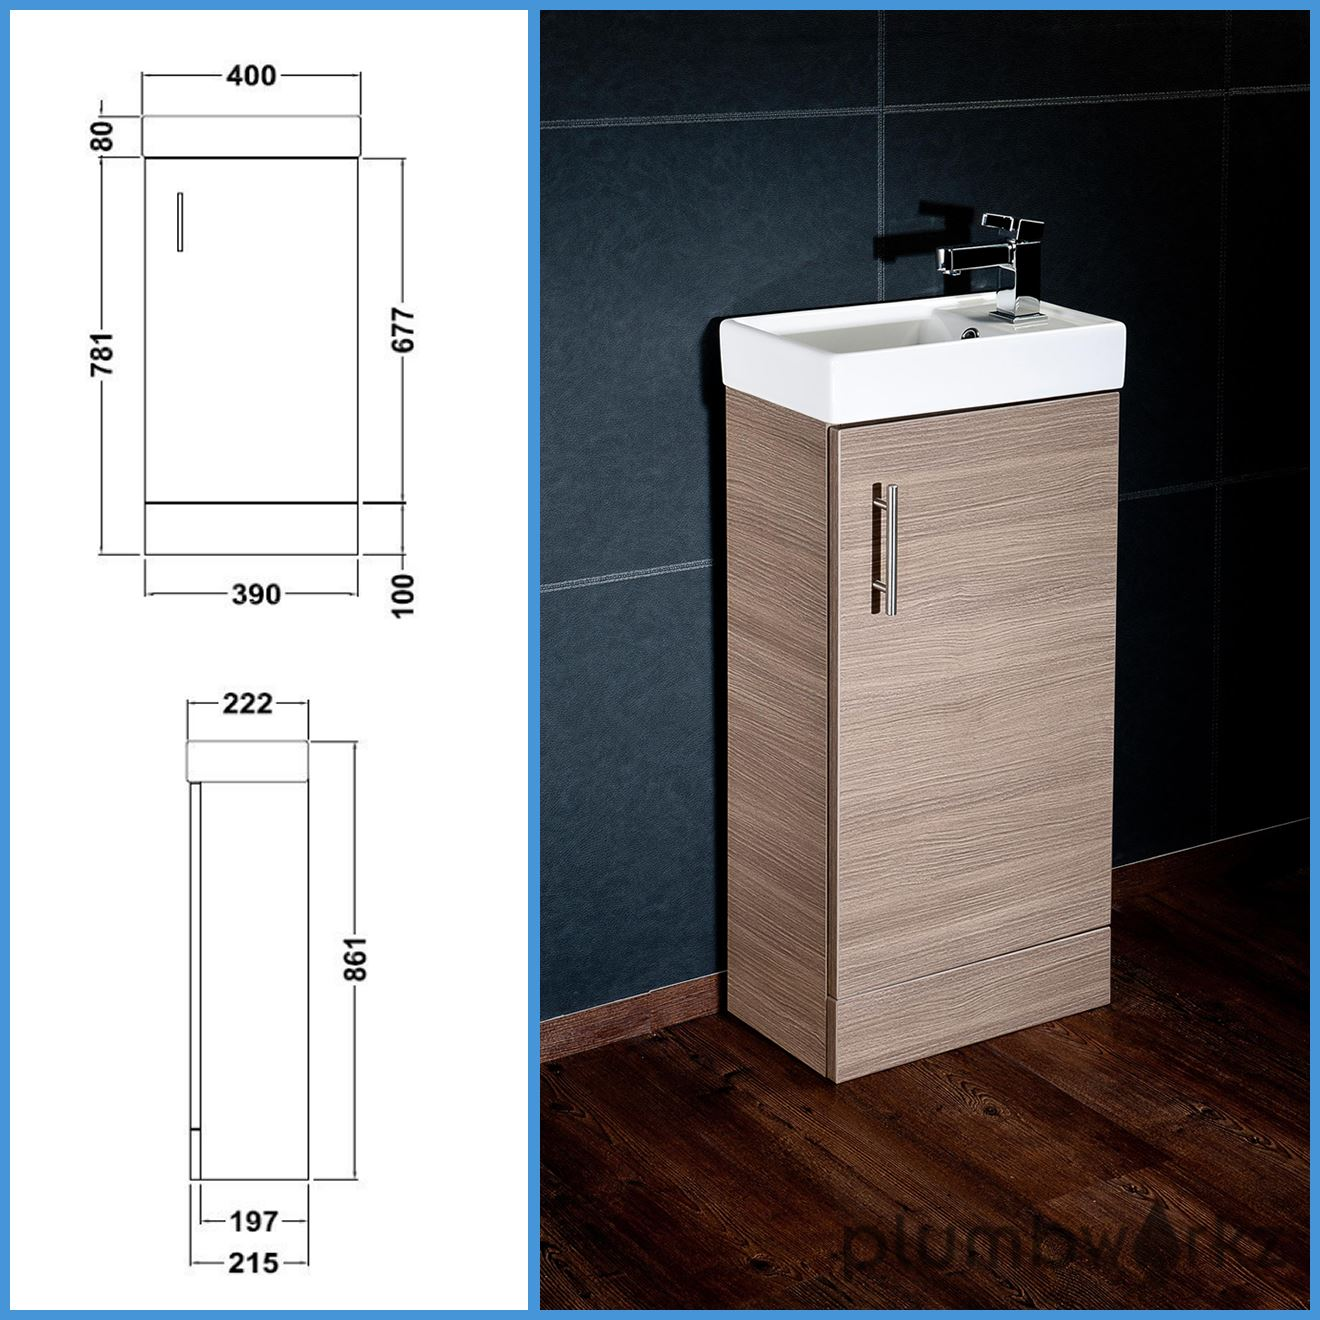 Compact Bathroom Vanity Unit amp Basin Sink Vanity. Compact Bathroom Vanity Unit  amp amp  Basin Sink Vanity 400mm Floor